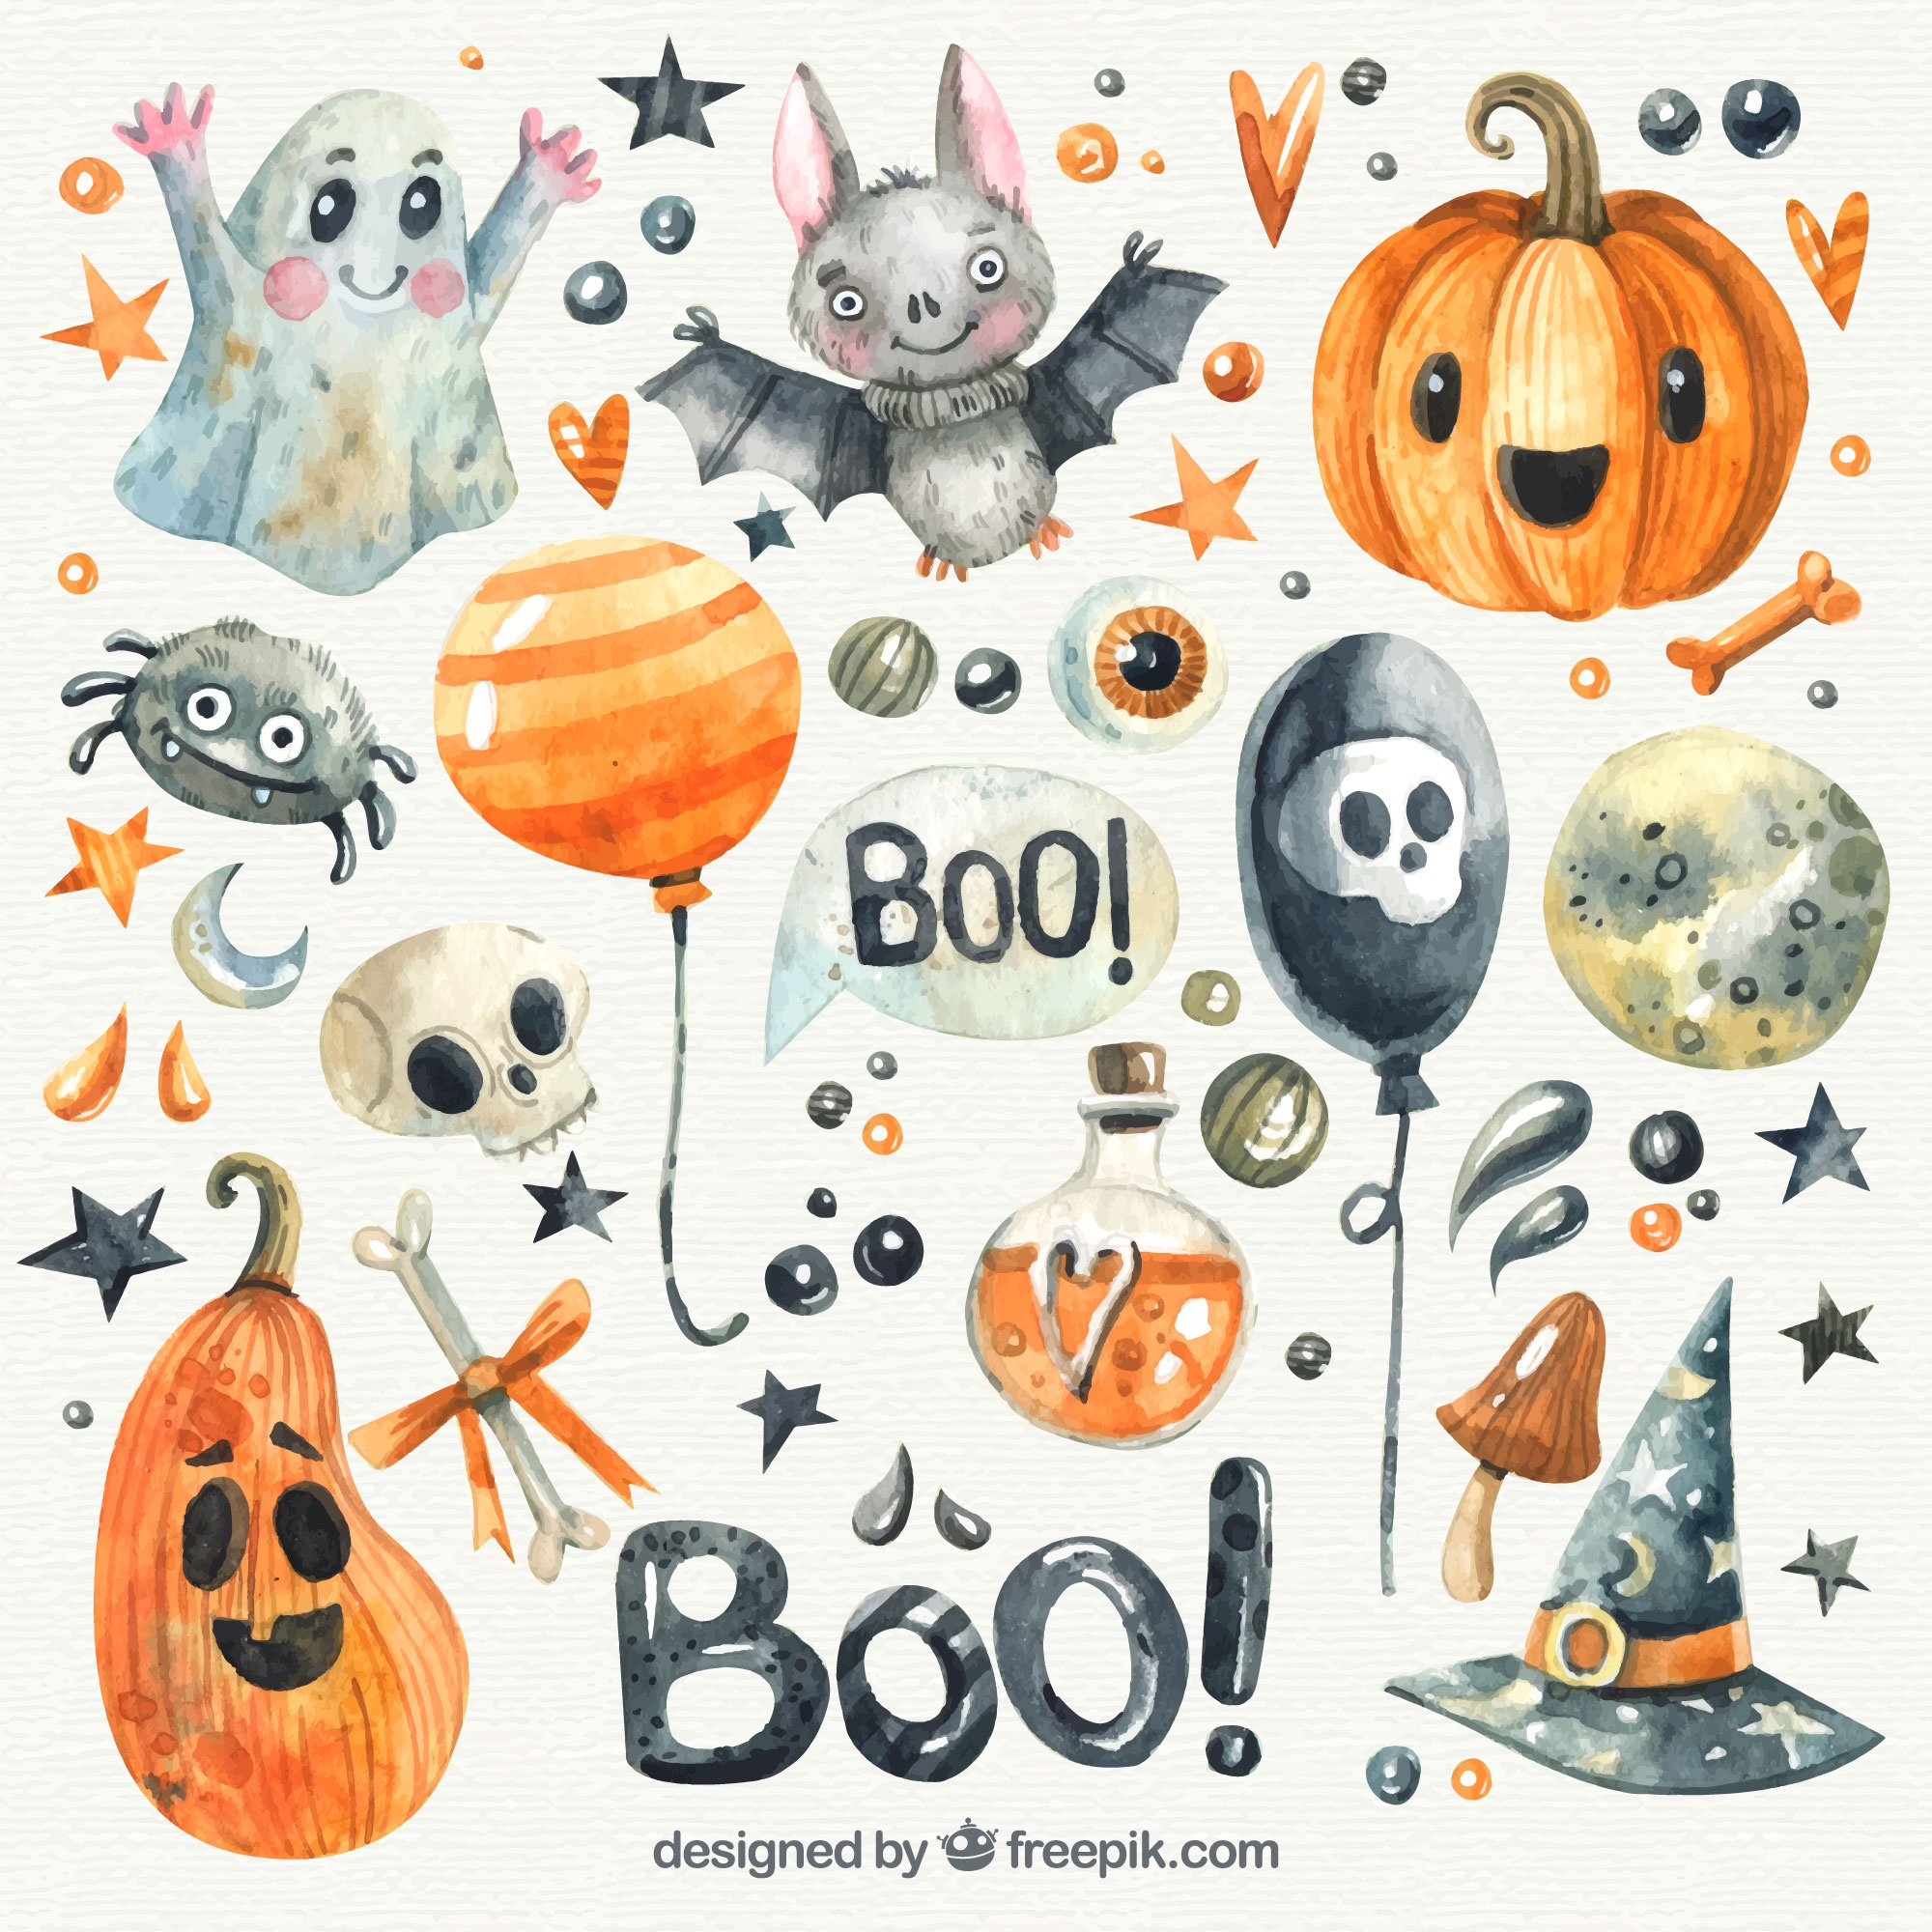 Nice watercolor halloween collection